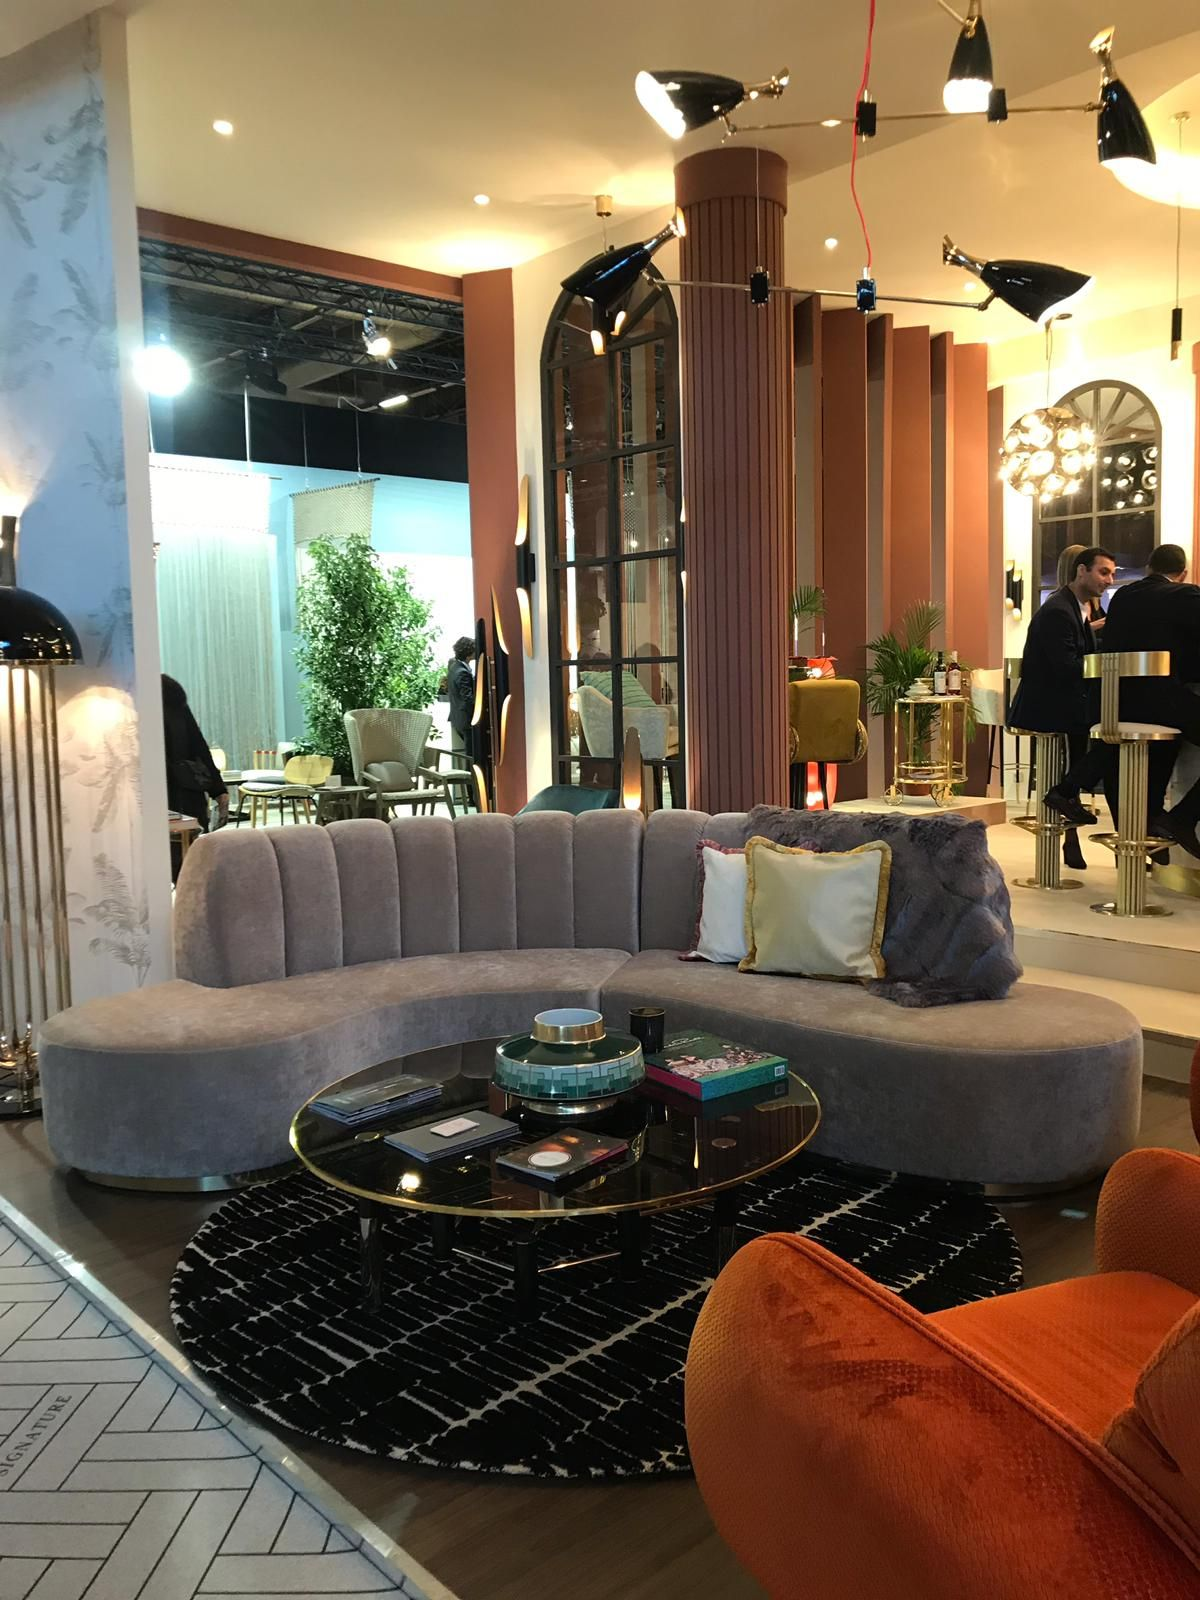 decoration interieur vintage moderne decoration vintage salon design collection s e This year Essential Home and DelightFULL wiil turn Mid-Century Modern and  vintage into life at another edition of Salon Maison et Objet in Paris.